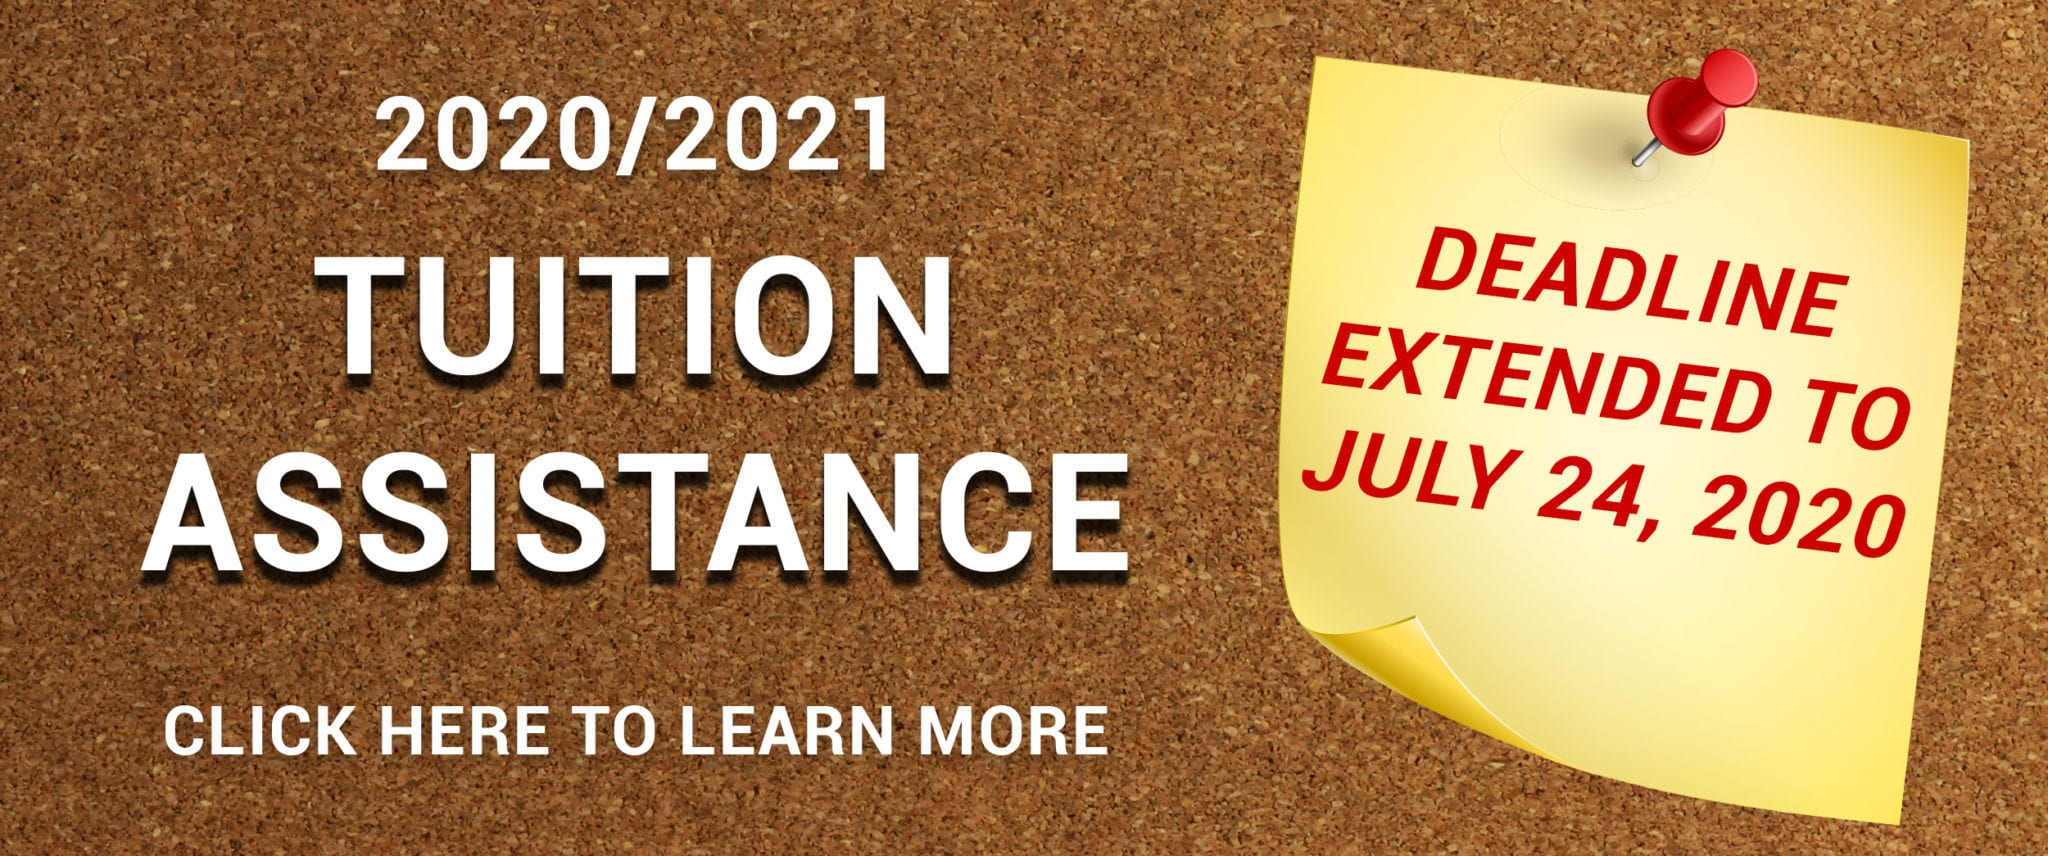 tuitionassistance20_extend